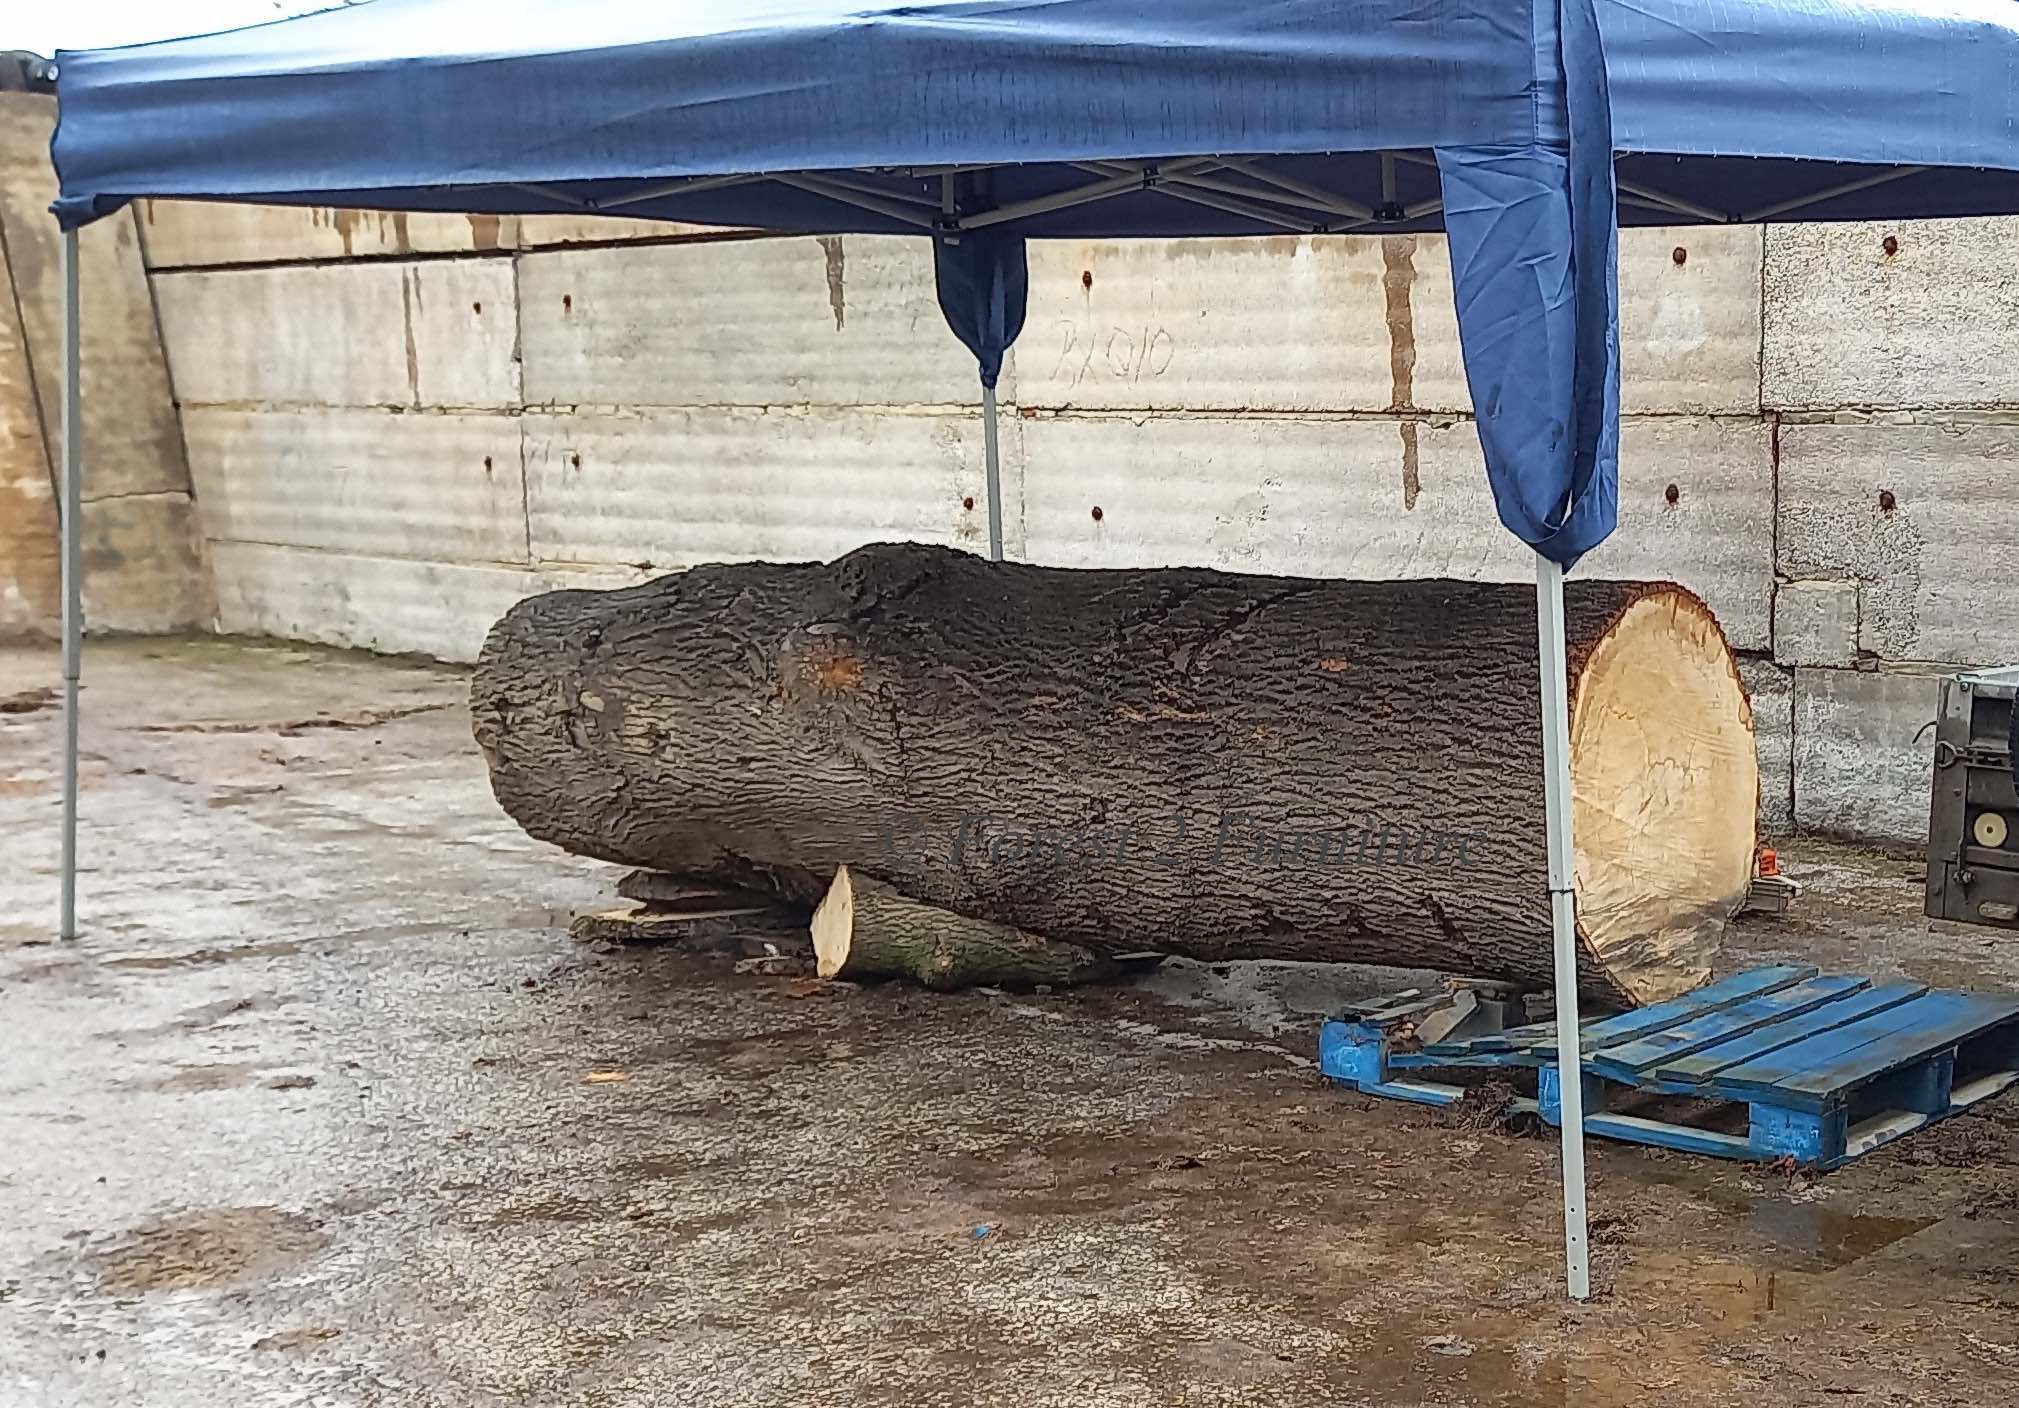 Felled Wych Elm at Bradwell in the Peak District awaiting milling into planks